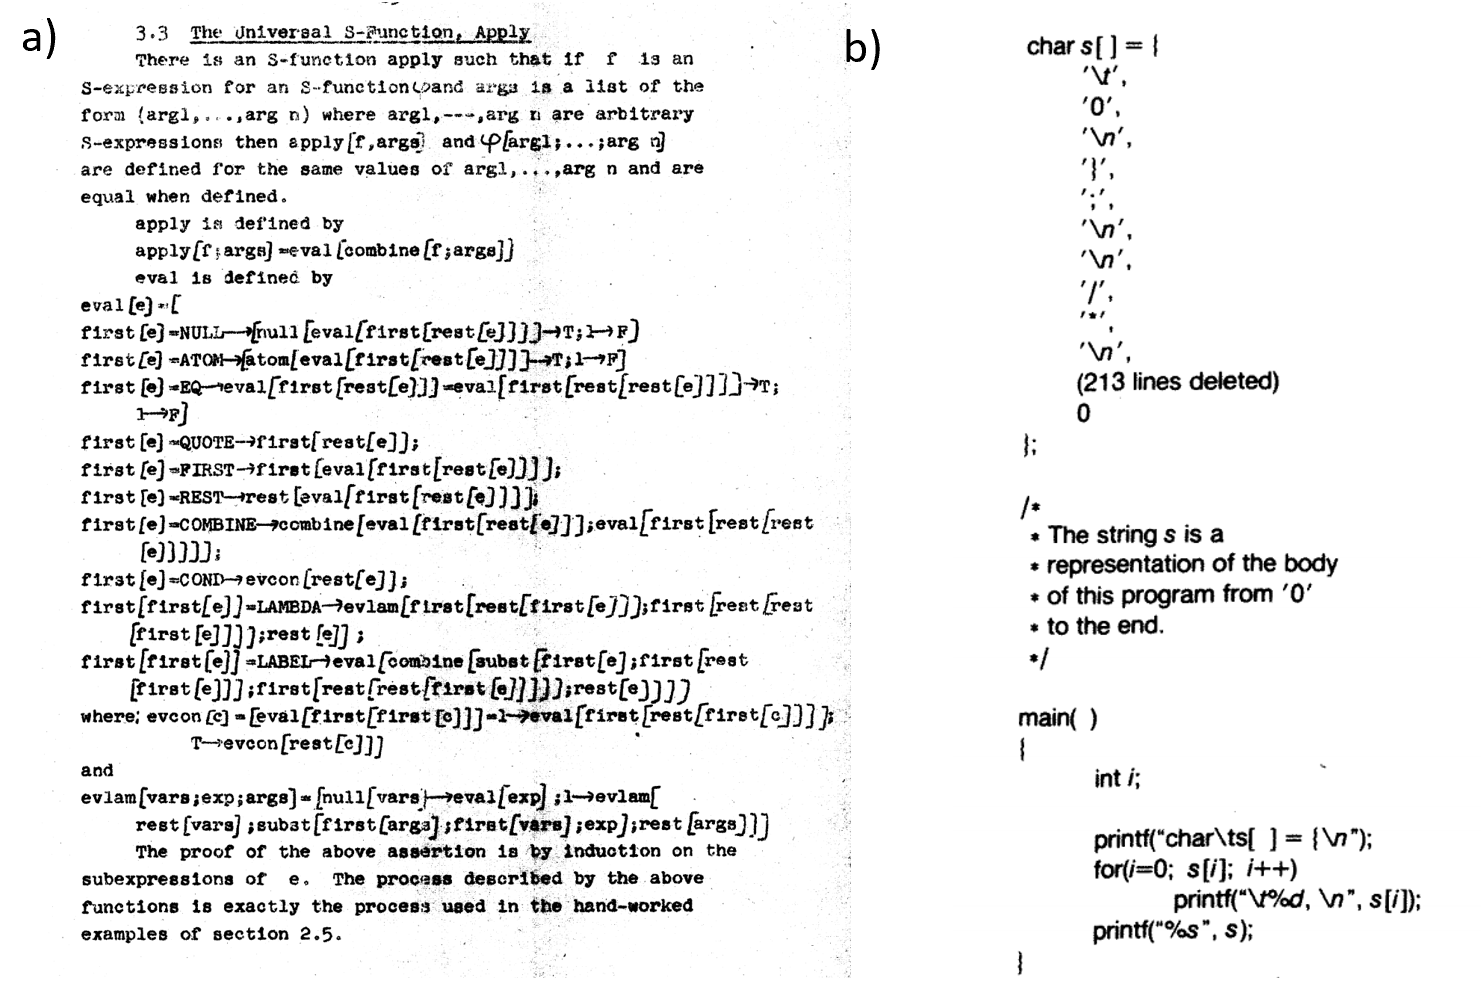 """a) A particularly elegant example of a """"meta-circular evaluator"""" comes from John McCarthy's 1960 paper, where he defined the Lisp programming language and gave a Lisp function that evaluates an arbitrary Lisp program (see above). Lisp was not initially intended as a practical programming language and this example was merely meant as an illustration that the Lisp universal function is more elegant than the universal Turing machine. It was McCarthy's graduate student Steve Russell who suggested that it can be implemented. As McCarthy later recalled, """"I said to him, ho, ho, you're confusing theory with practice, this eval is intended for reading, not for computing. But he went ahead and did it. That is, he compiled the eval in my paper into IBM 704 machine code, fixing a bug, and then advertised this as a Lisp interpreter, which it certainly was"""". b) A self-replicating C program from the classic essay of Thompson ."""